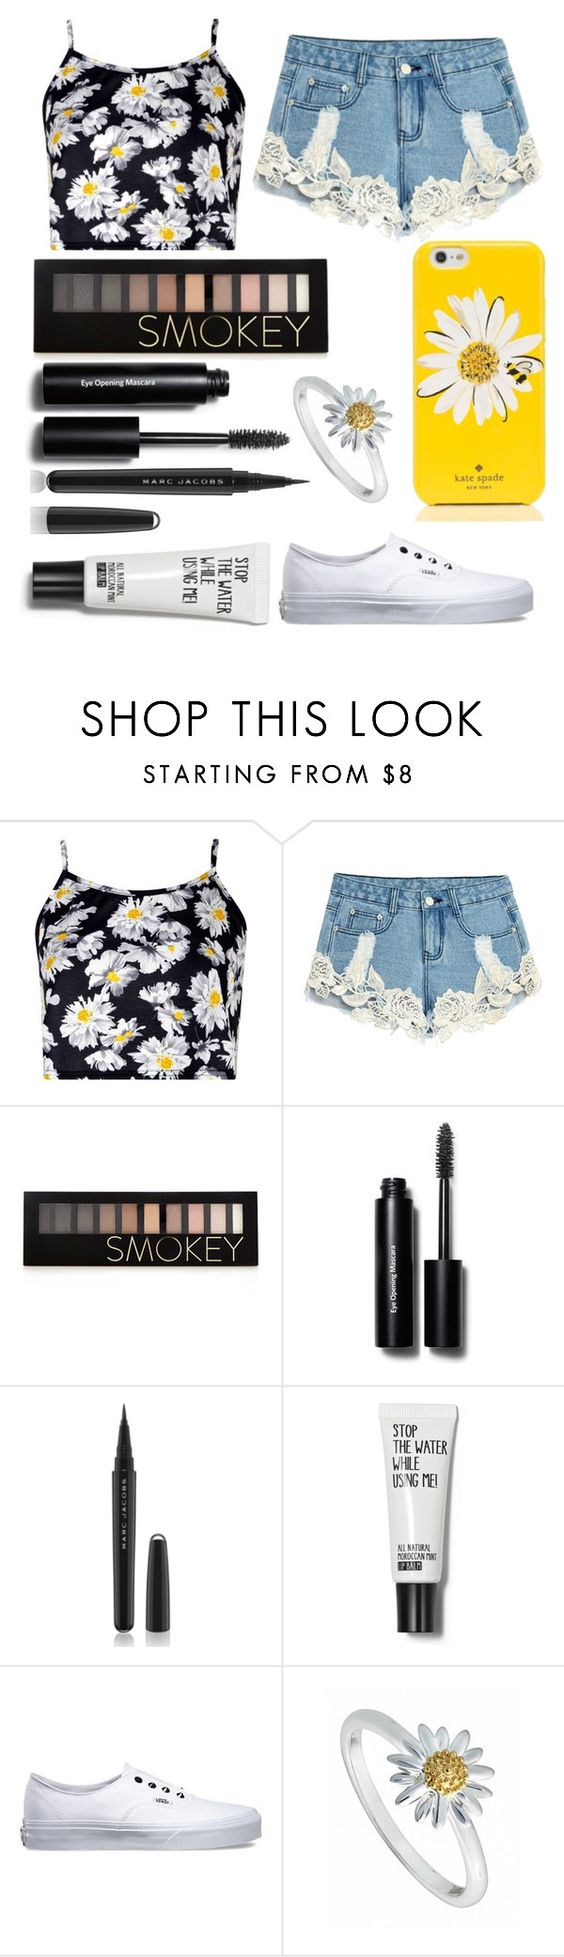 """Daisy"" by fangirlsfandom ❤ liked on Polyvore featuring мода, Boohoo, Forever 21, Bobbi Brown Cosmetics, Marc Jacobs, Vans, Daisy Jewellery, Kate Spade, women's clothing и women"